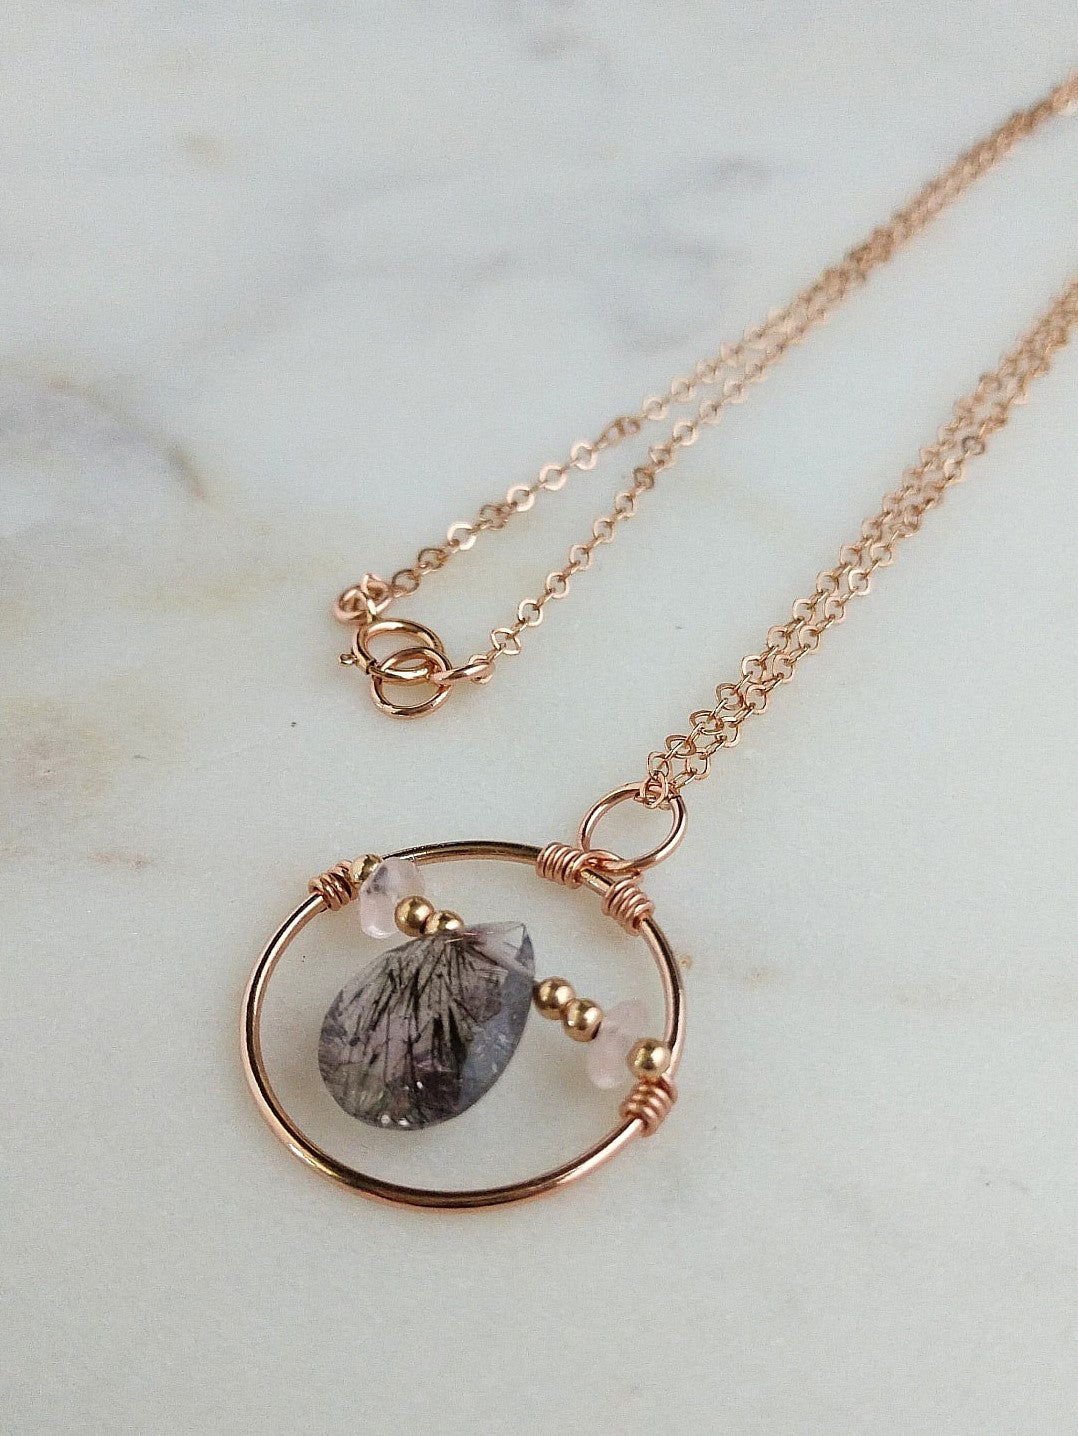 thaumatrope necklace with royal lepidocrosite, rose quartz, and rose gold fill.